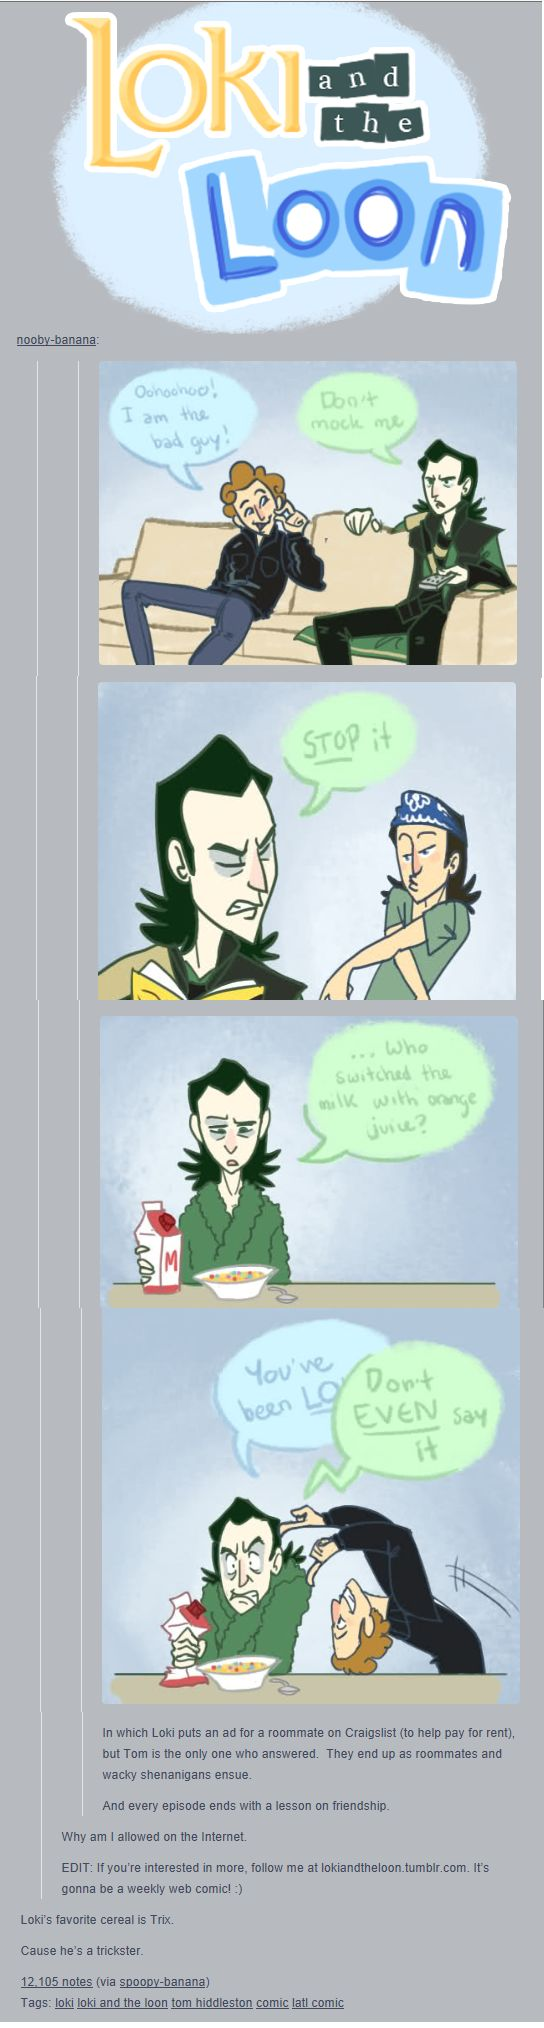 TUMBLR COMIC BLOG: http://loki-and-the-loon.tumblr.com/tagged/comic/chrono >> so many hilarious comic strips <3 I feel like this is one of those things that should be Tweeted to #twhiddleston